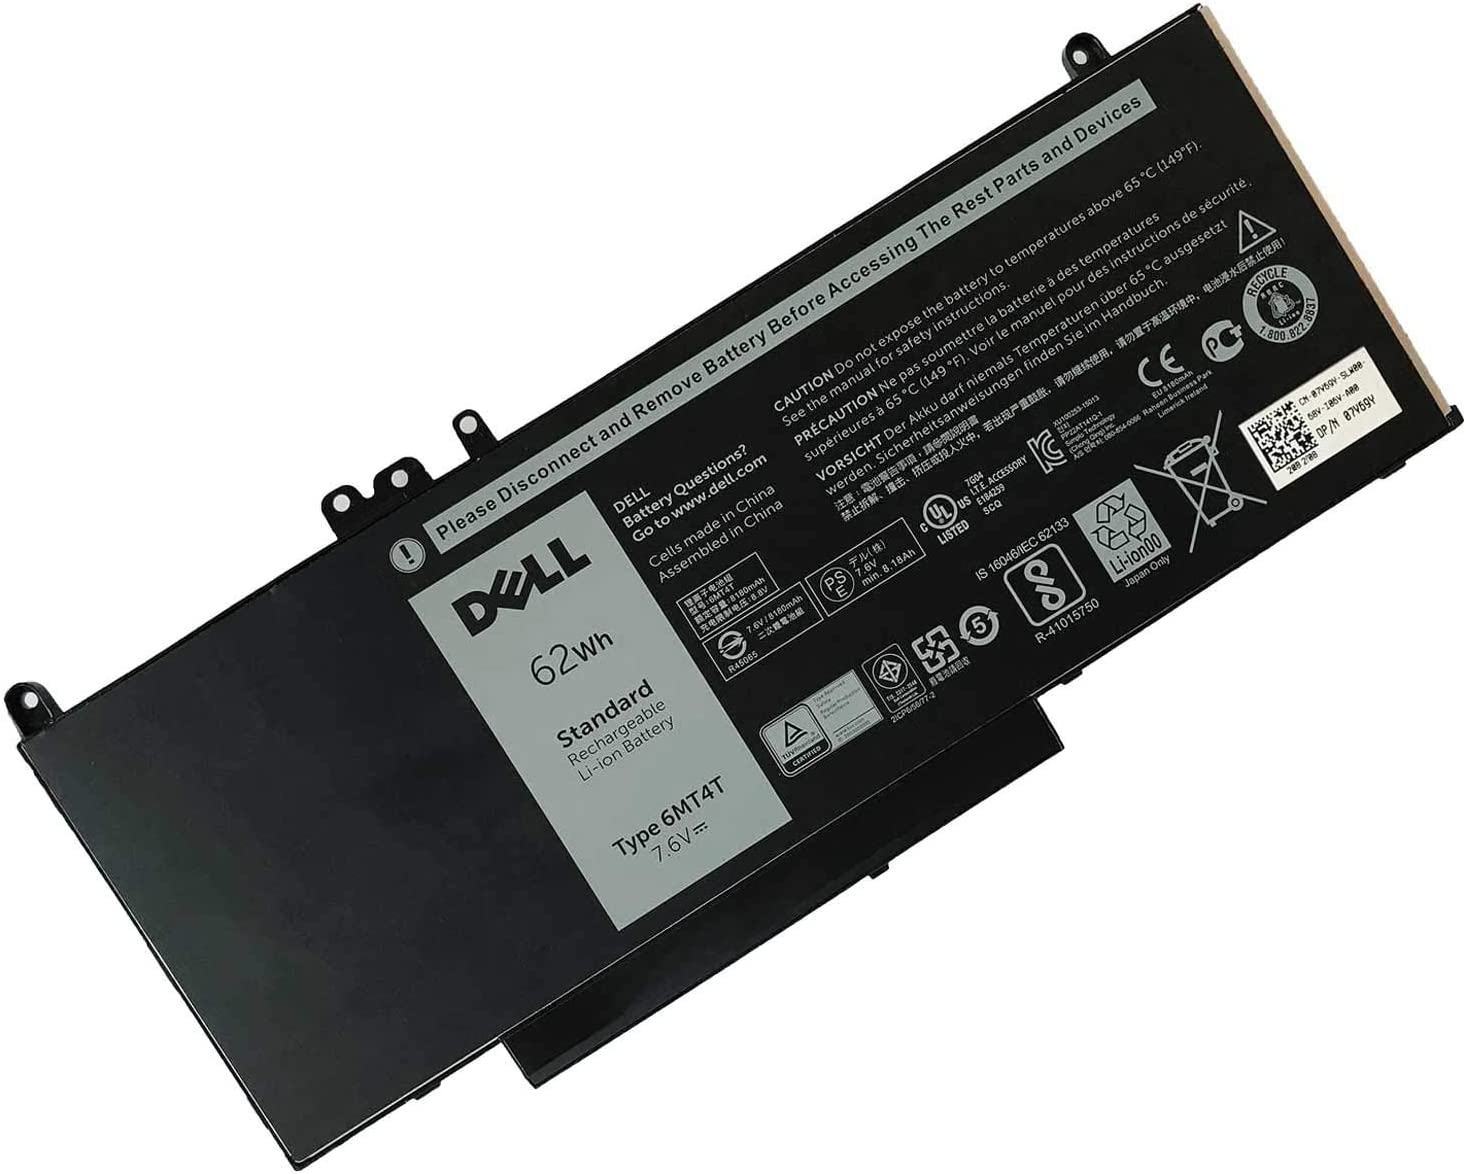 DELL 6MT4T Battery Compatible with Dell Dell Latitude E5470 Latitude E5570 Precision 3510 7.6V 62Wh Latitude E5570 E5470 7V69Y TXF9M 79VRK 07V69Y Laptop Battery